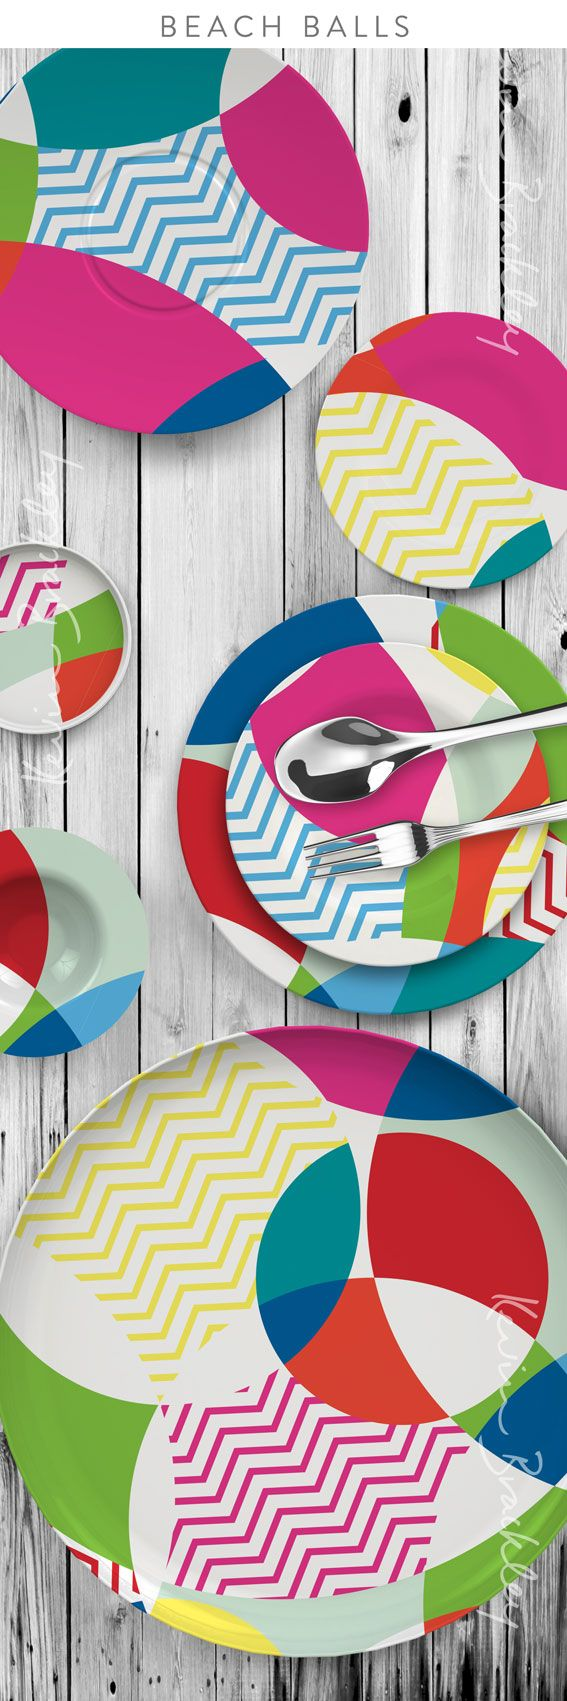 Home decor plates and bowls concept in my Beach Balls design